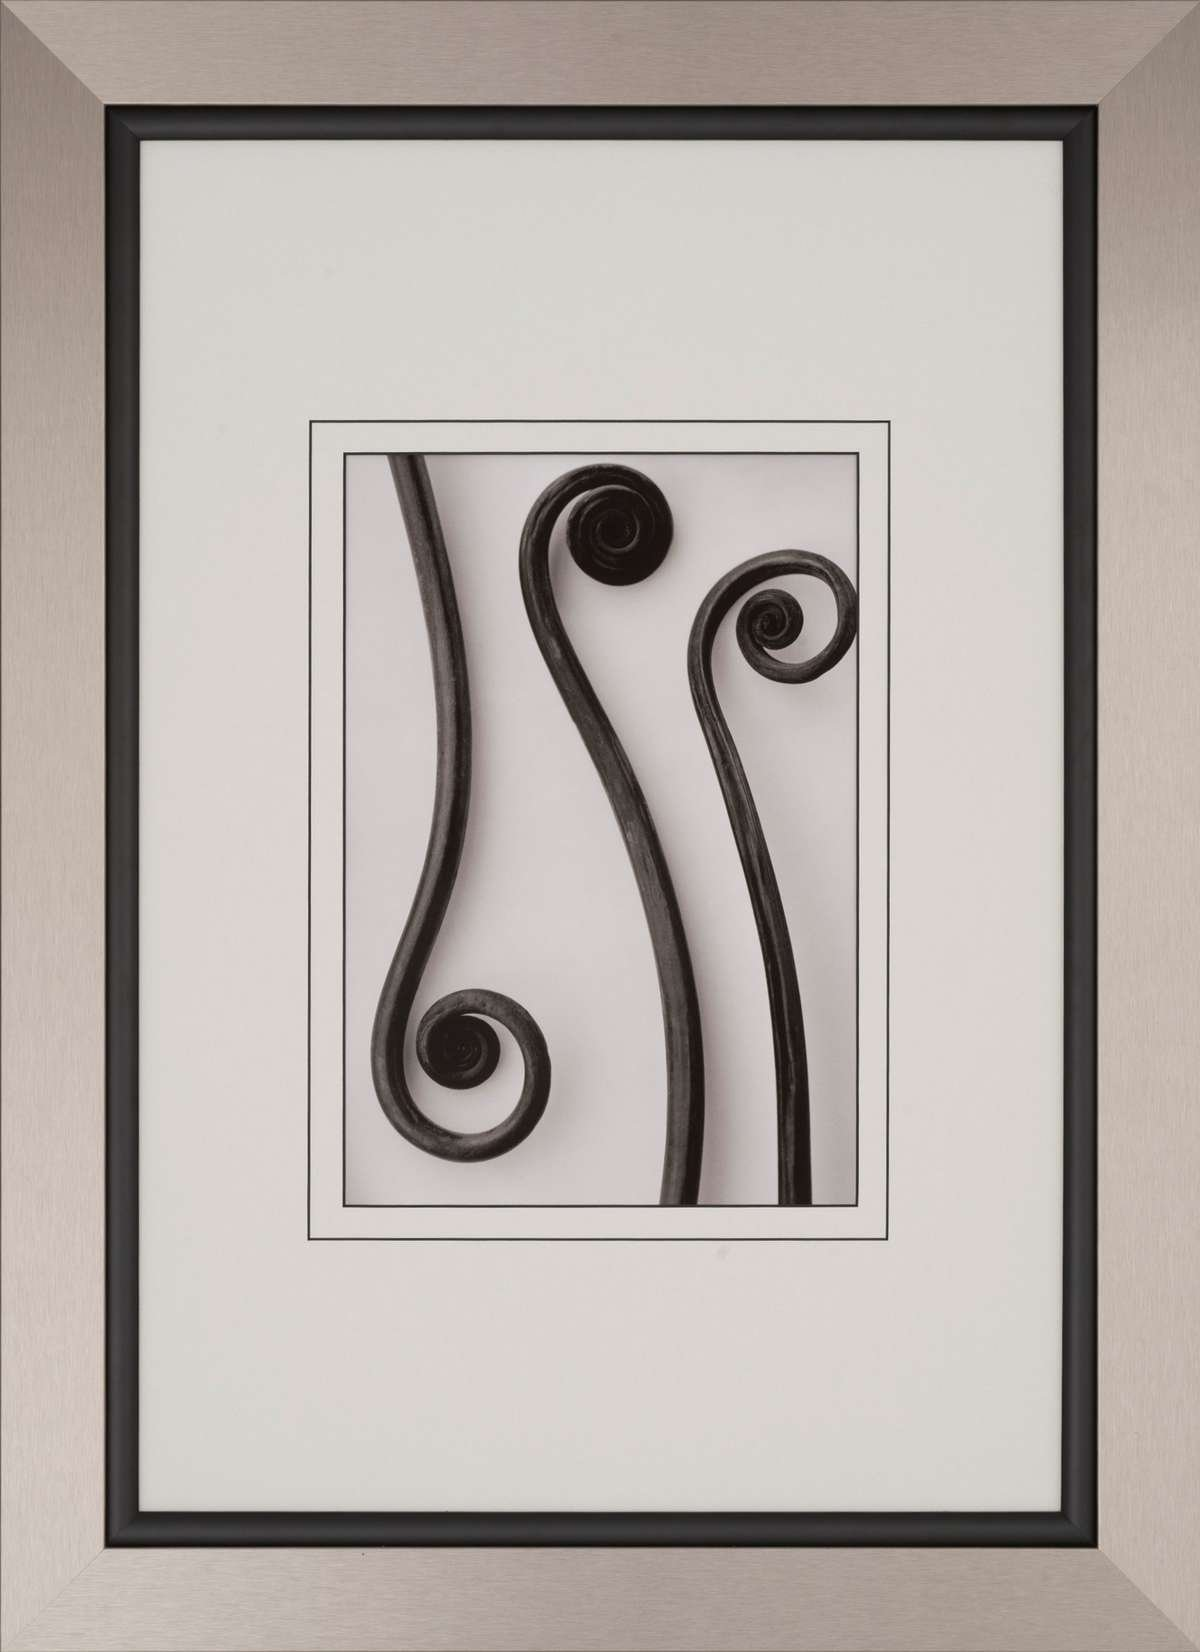 Picture framing in calgary kuva print and frame come in and view samples in person solutioingenieria Image collections